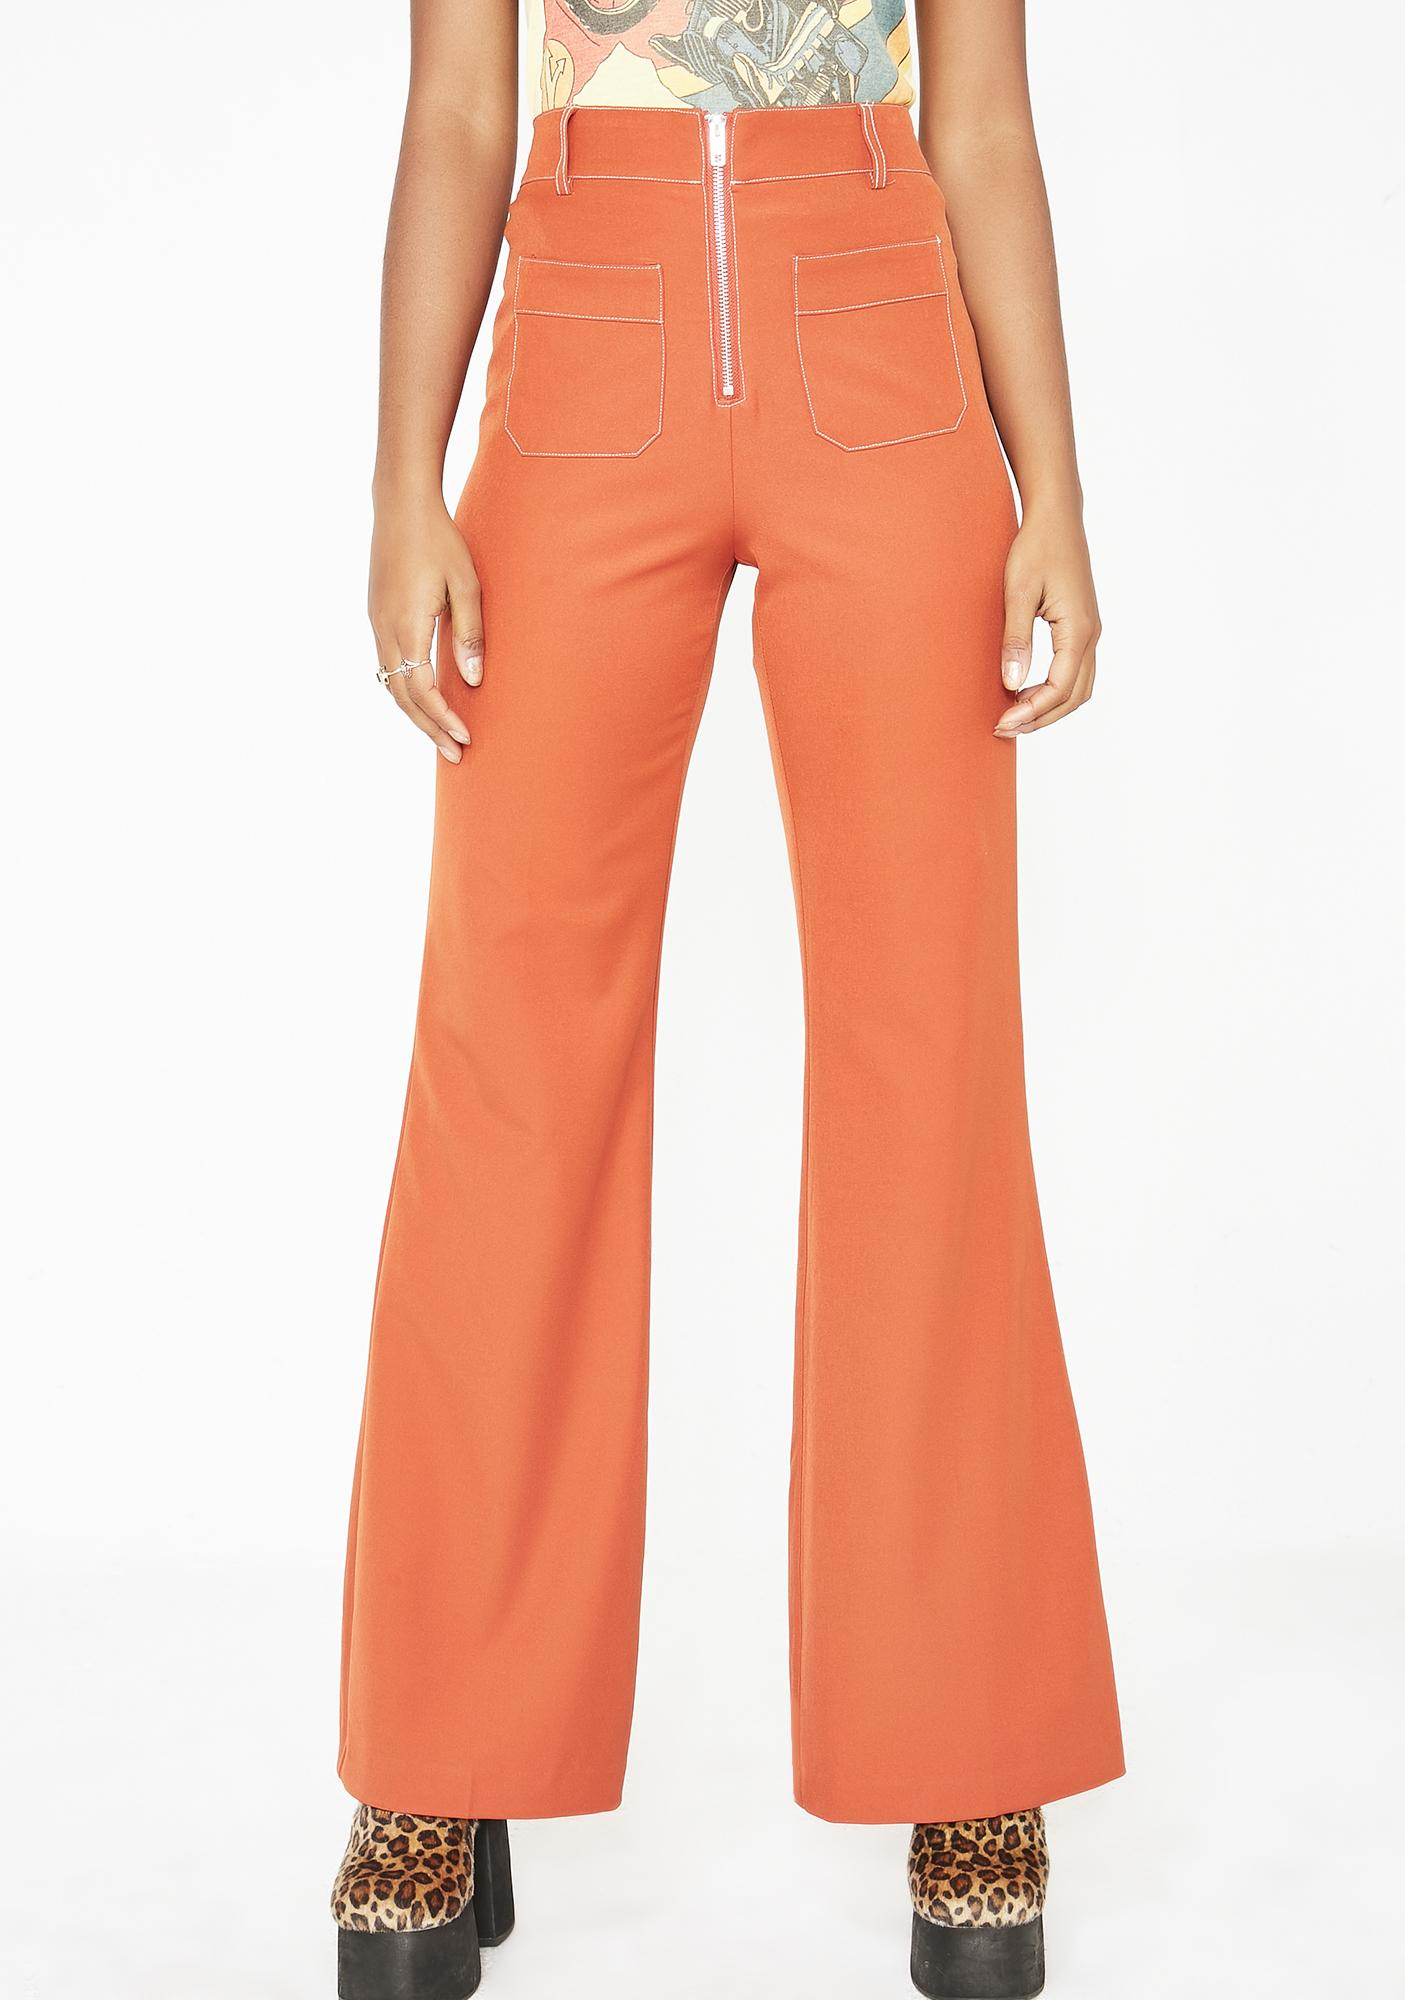 b5169362d90 Honey Punch Summer Dreamy Energy Flare Pants